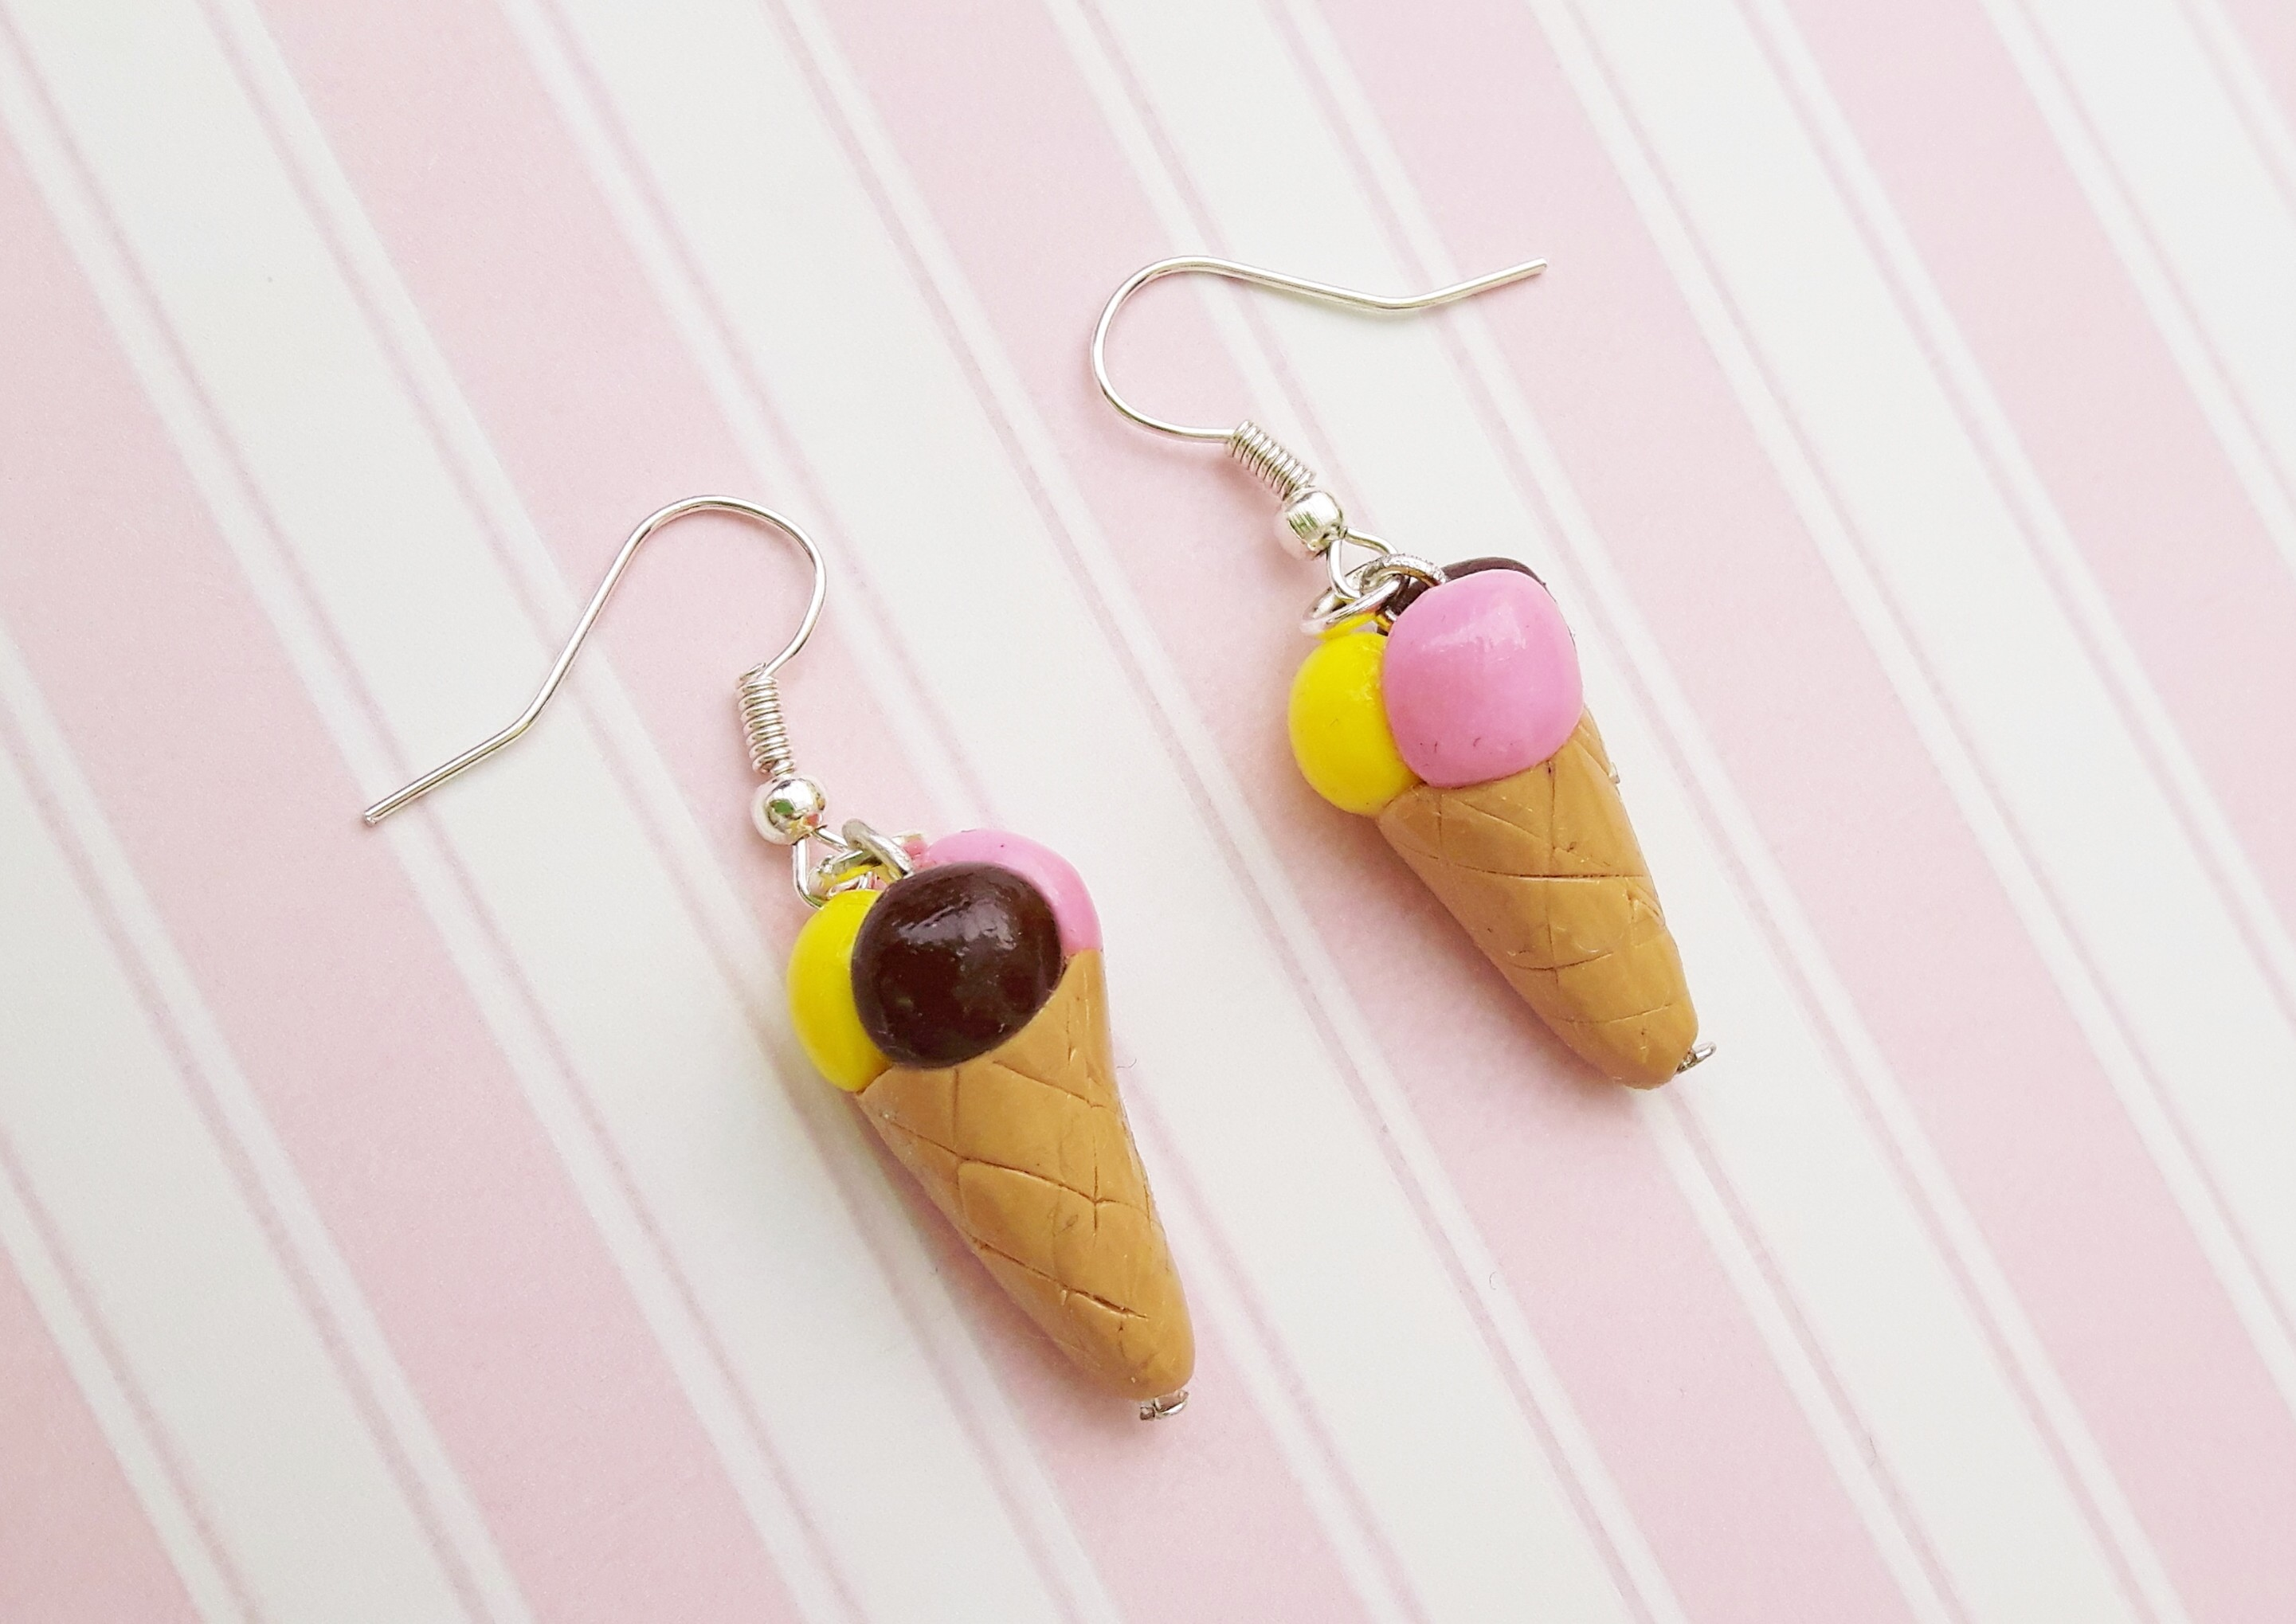 Handmade, cute, sweet, candy, pick 'n' mix, novelty, kitsch, kawaii, jewellery, accessories, gifts, fashion, made from, Fimo, polymer clay, silver, plated, nickel free, in uk, neopolitain, ice cream, cone, earrings,